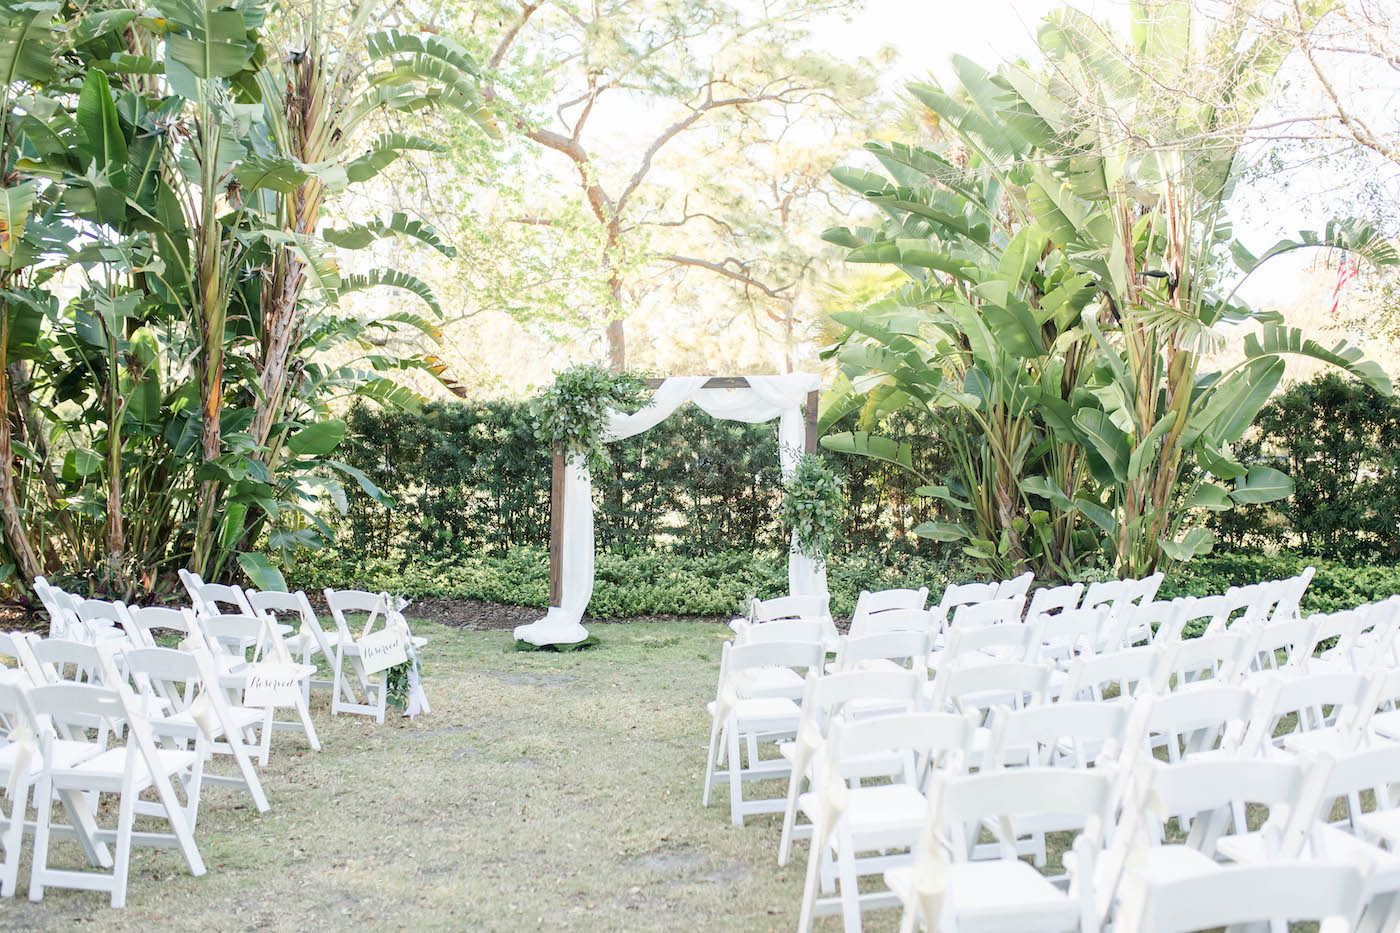 Tampa Wedding Venue the Tampa Garden Club   Outdoor Garden Wedding Ceremony with White Garden Chairs and Wood Arch with White Draping and Greenery Floral Arrangements